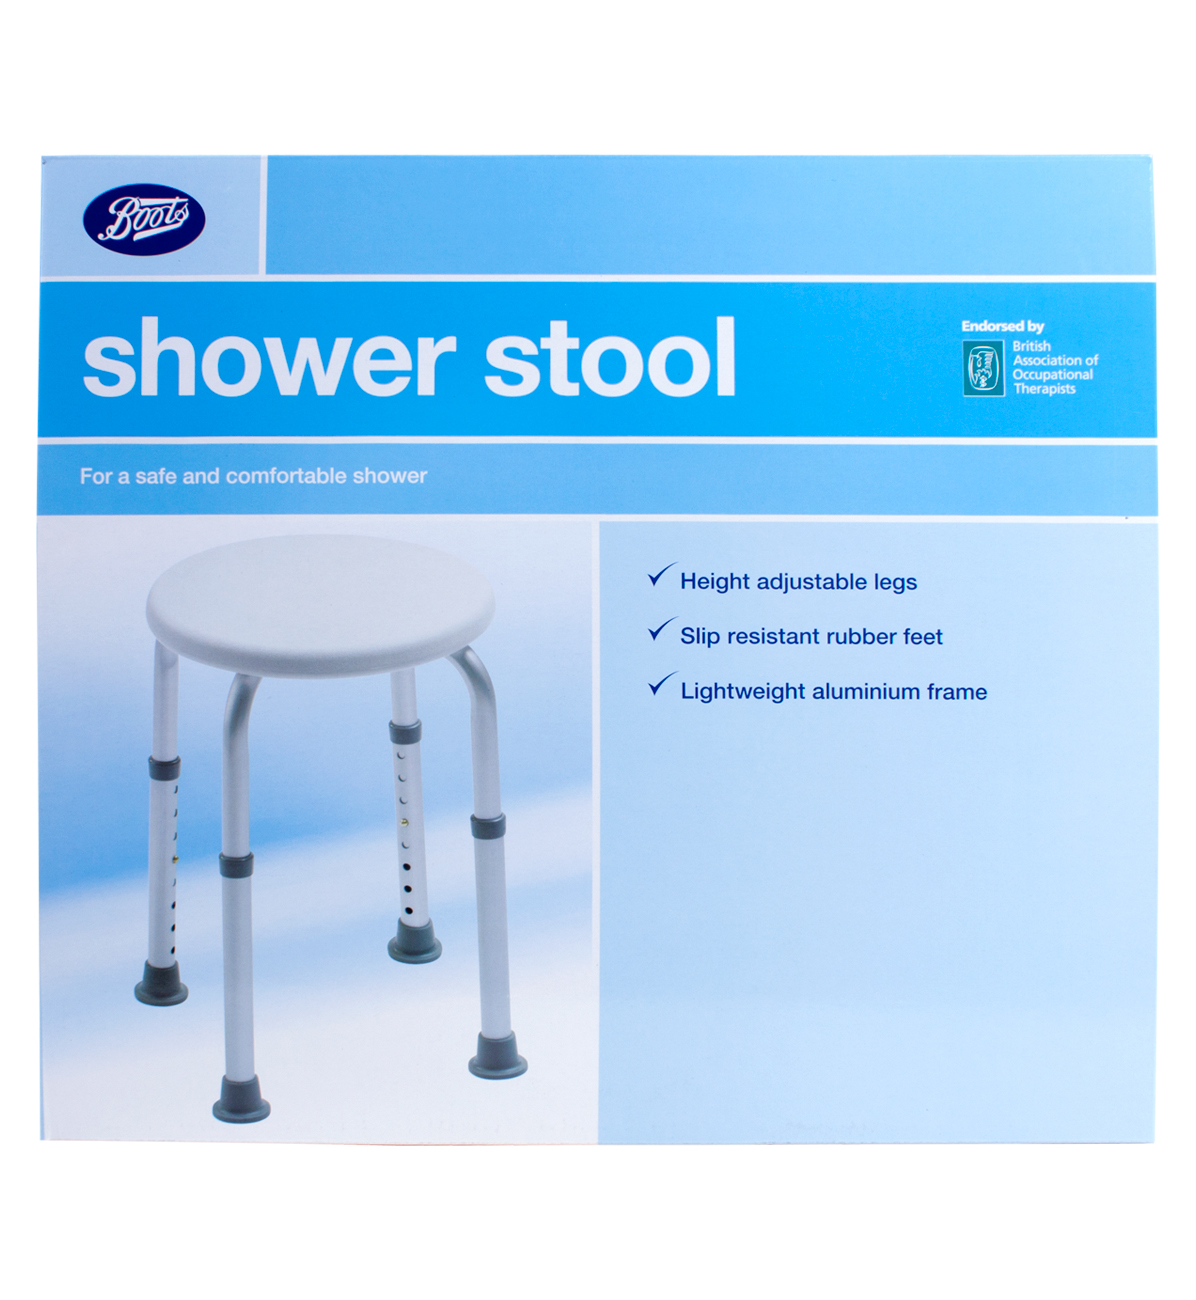 Boots shower stool